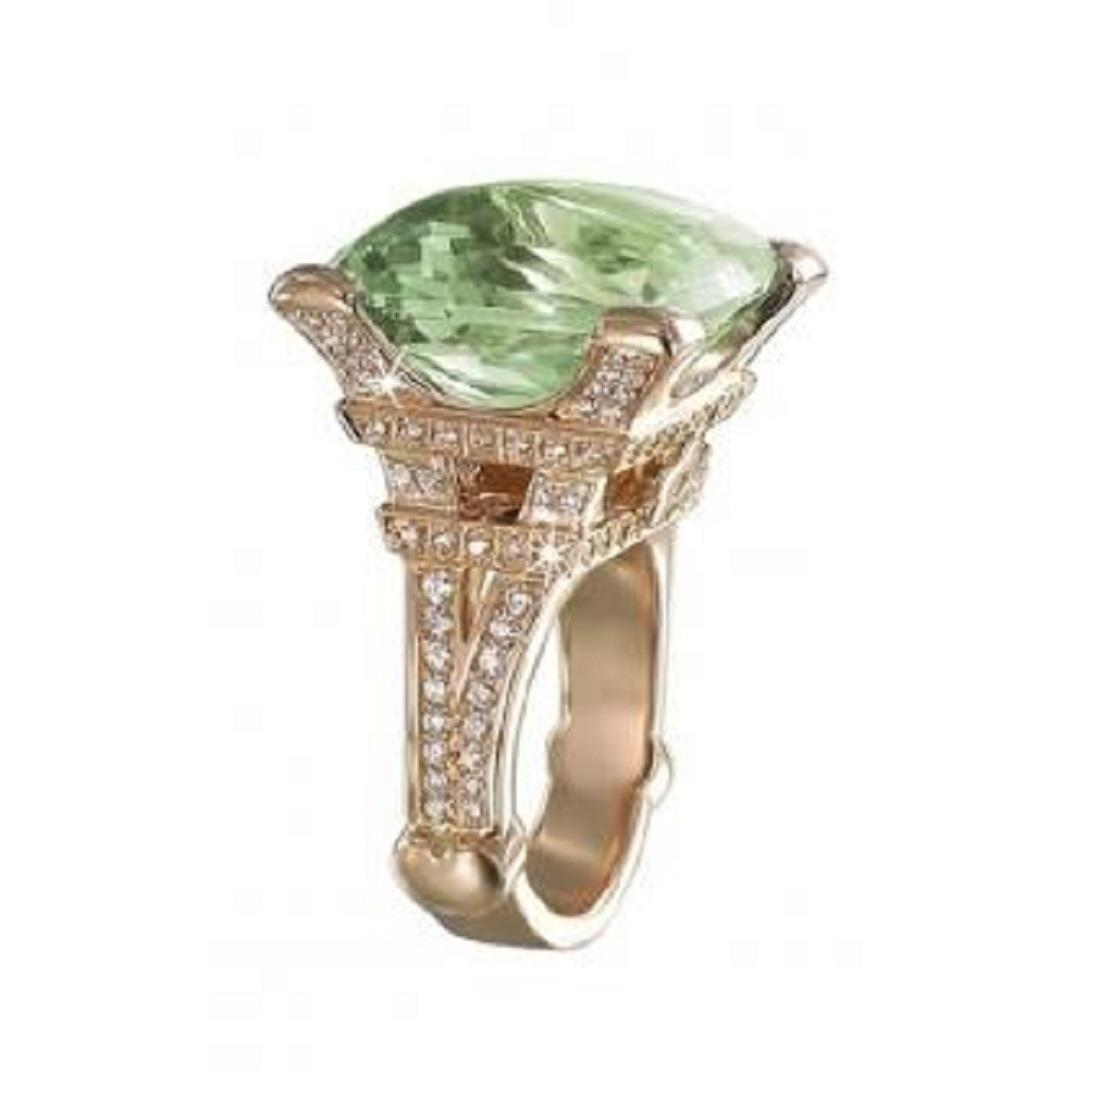 Anello design con diamanti e quarzo verde - PASQUALE BRUNI